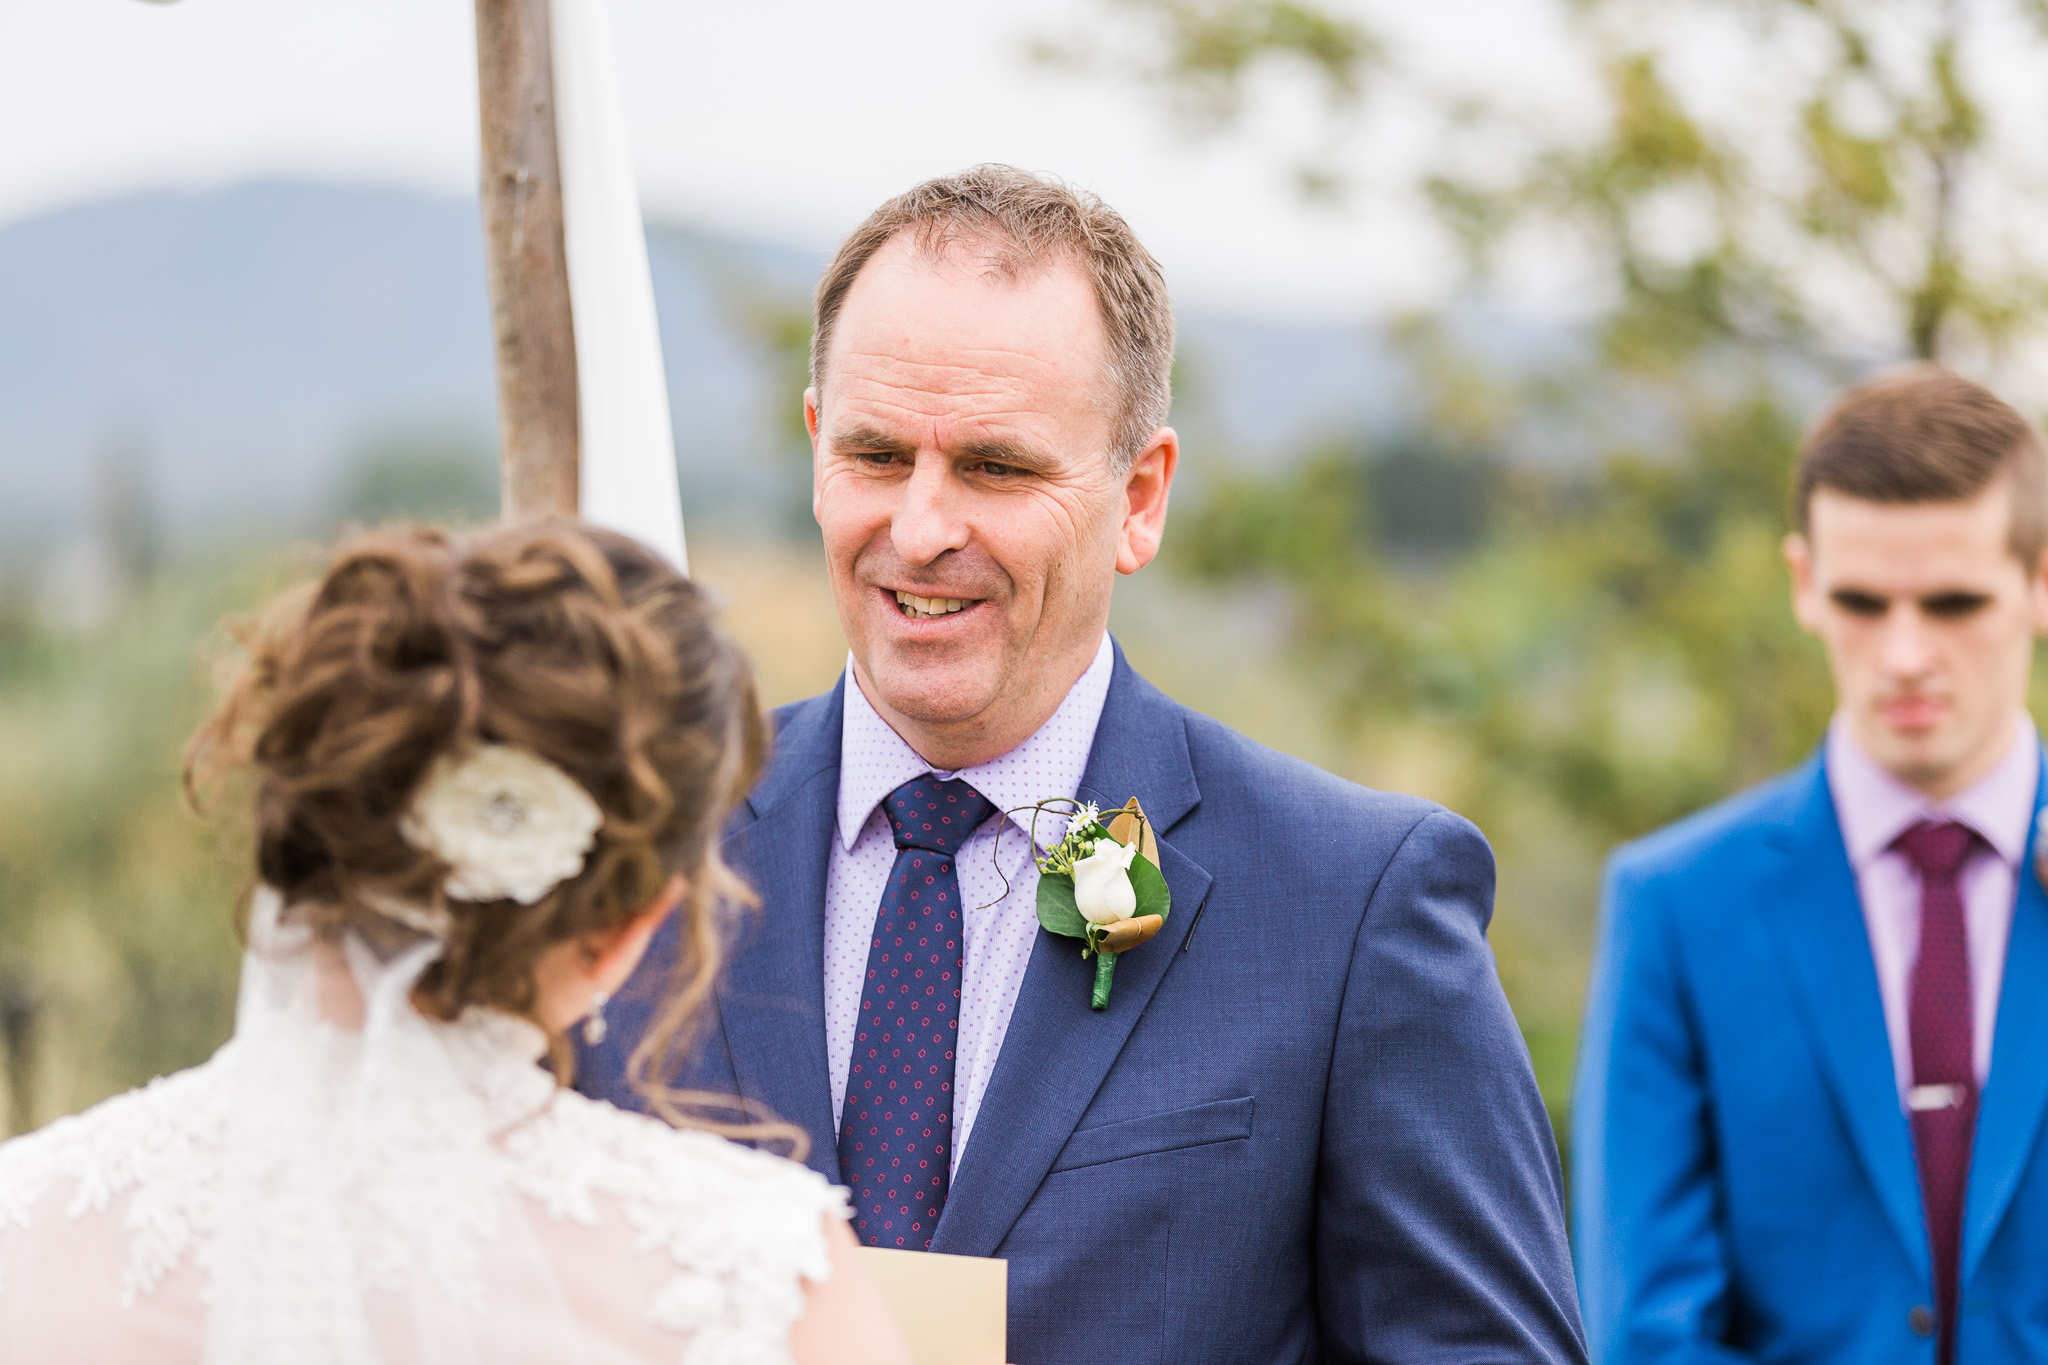 Bride and groom exchanging vows - Intimate Wedding Canberra